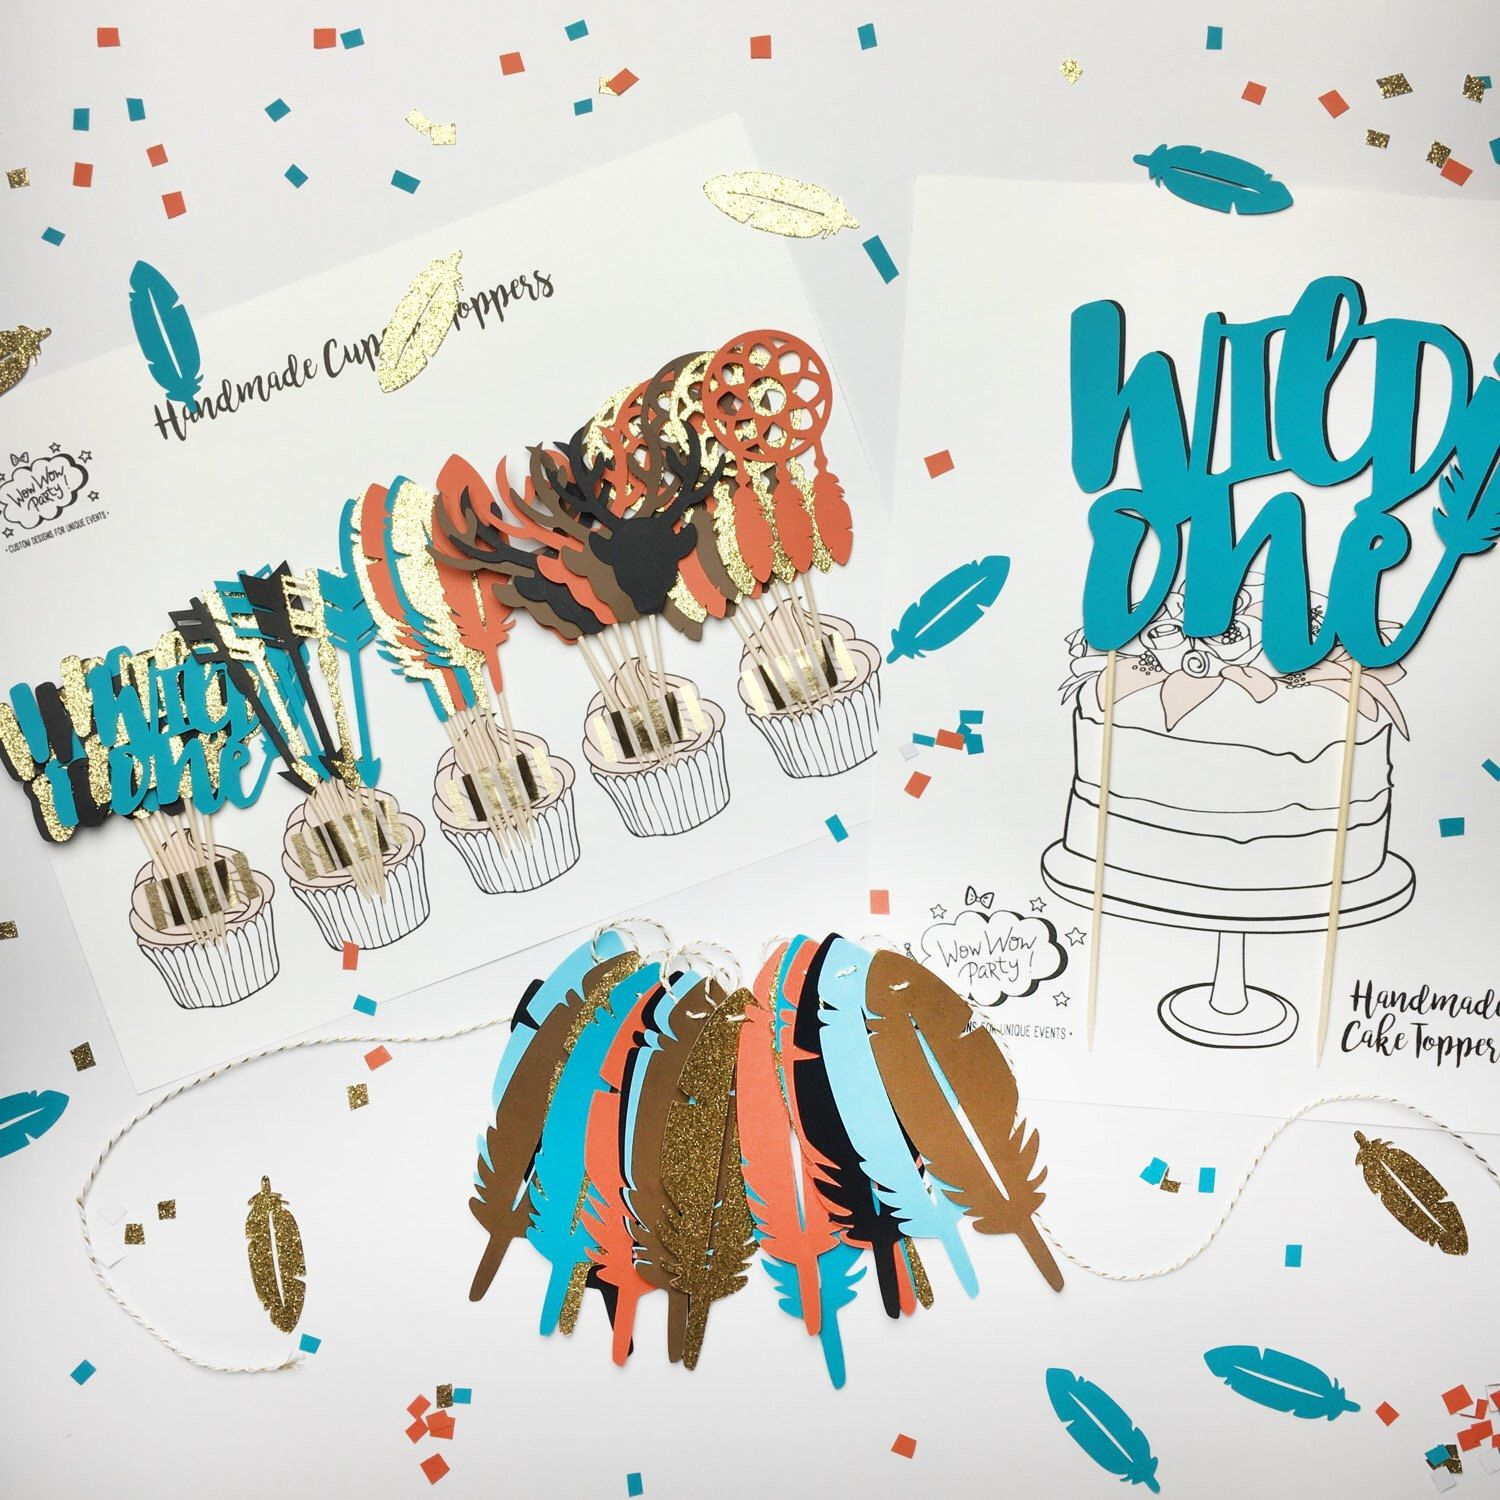 Design banner for etsy - Pow Wow Party Decoration Set Feather Banner Wild One Cake Topper Tribal